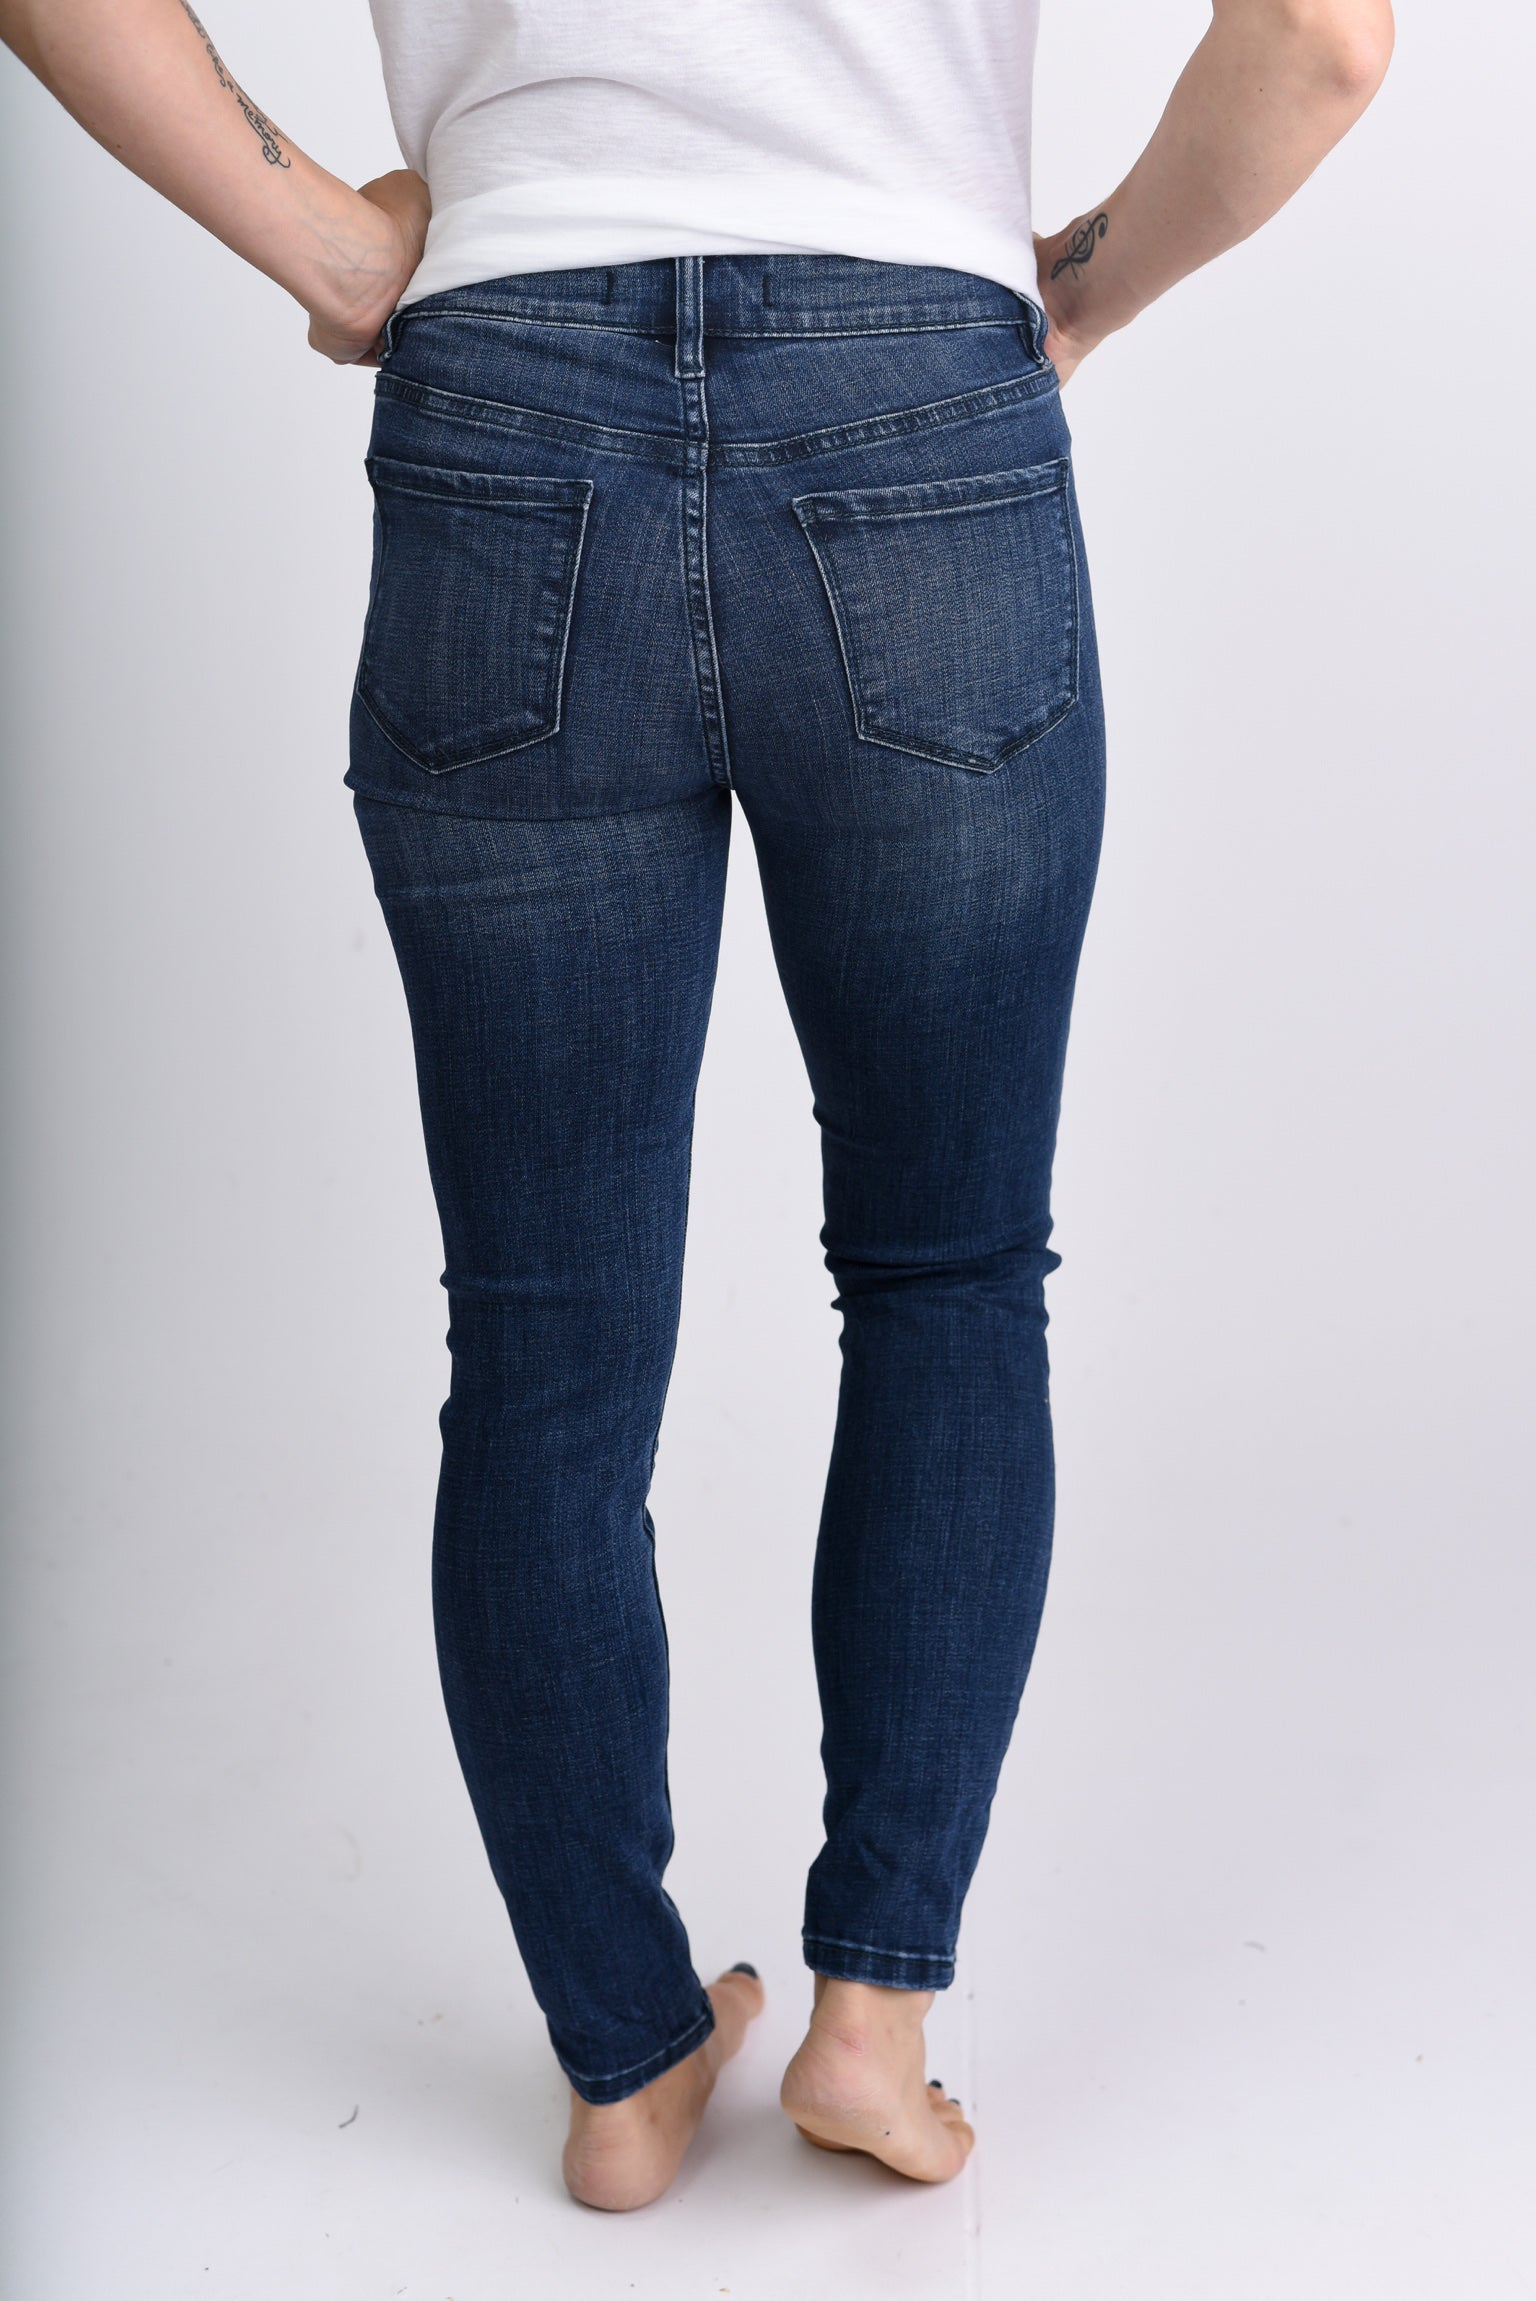 You're Free To Rise Lightly Distressed Dark Wash Skinny Jeans